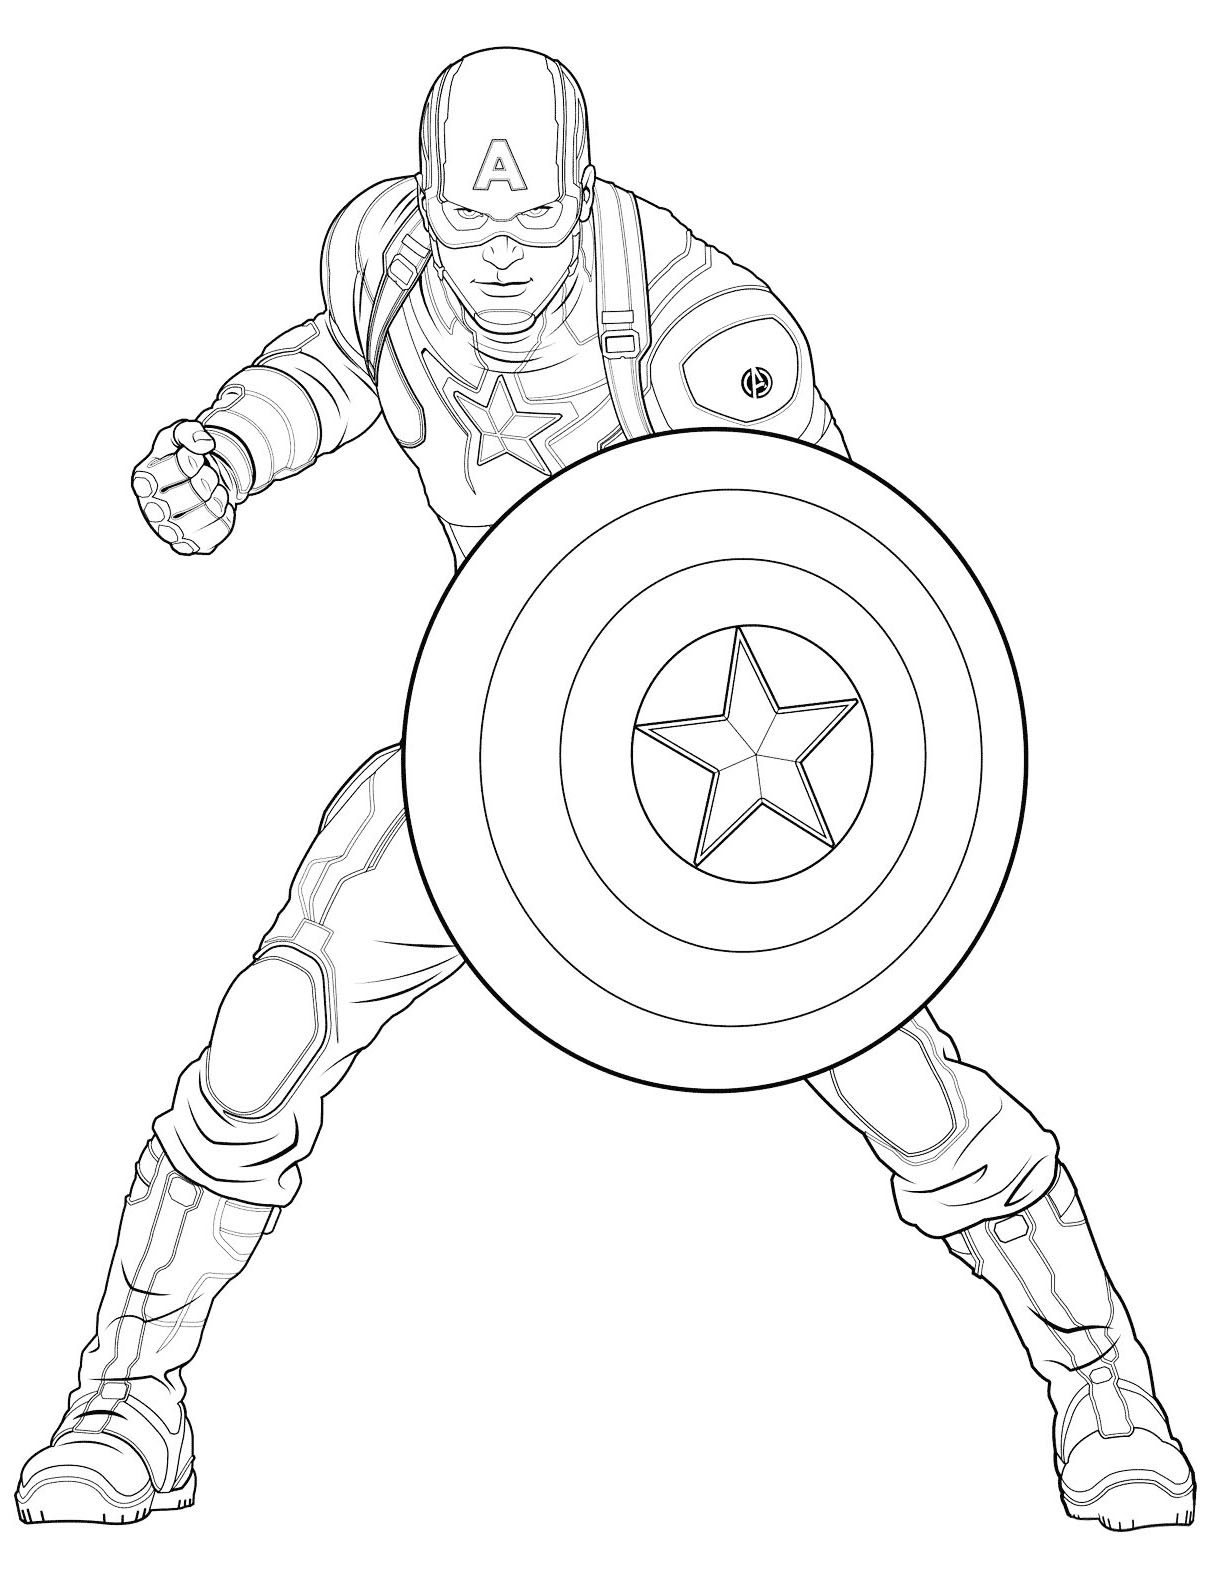 captain america for coloring captain america face coloring pages coloring home america coloring captain for